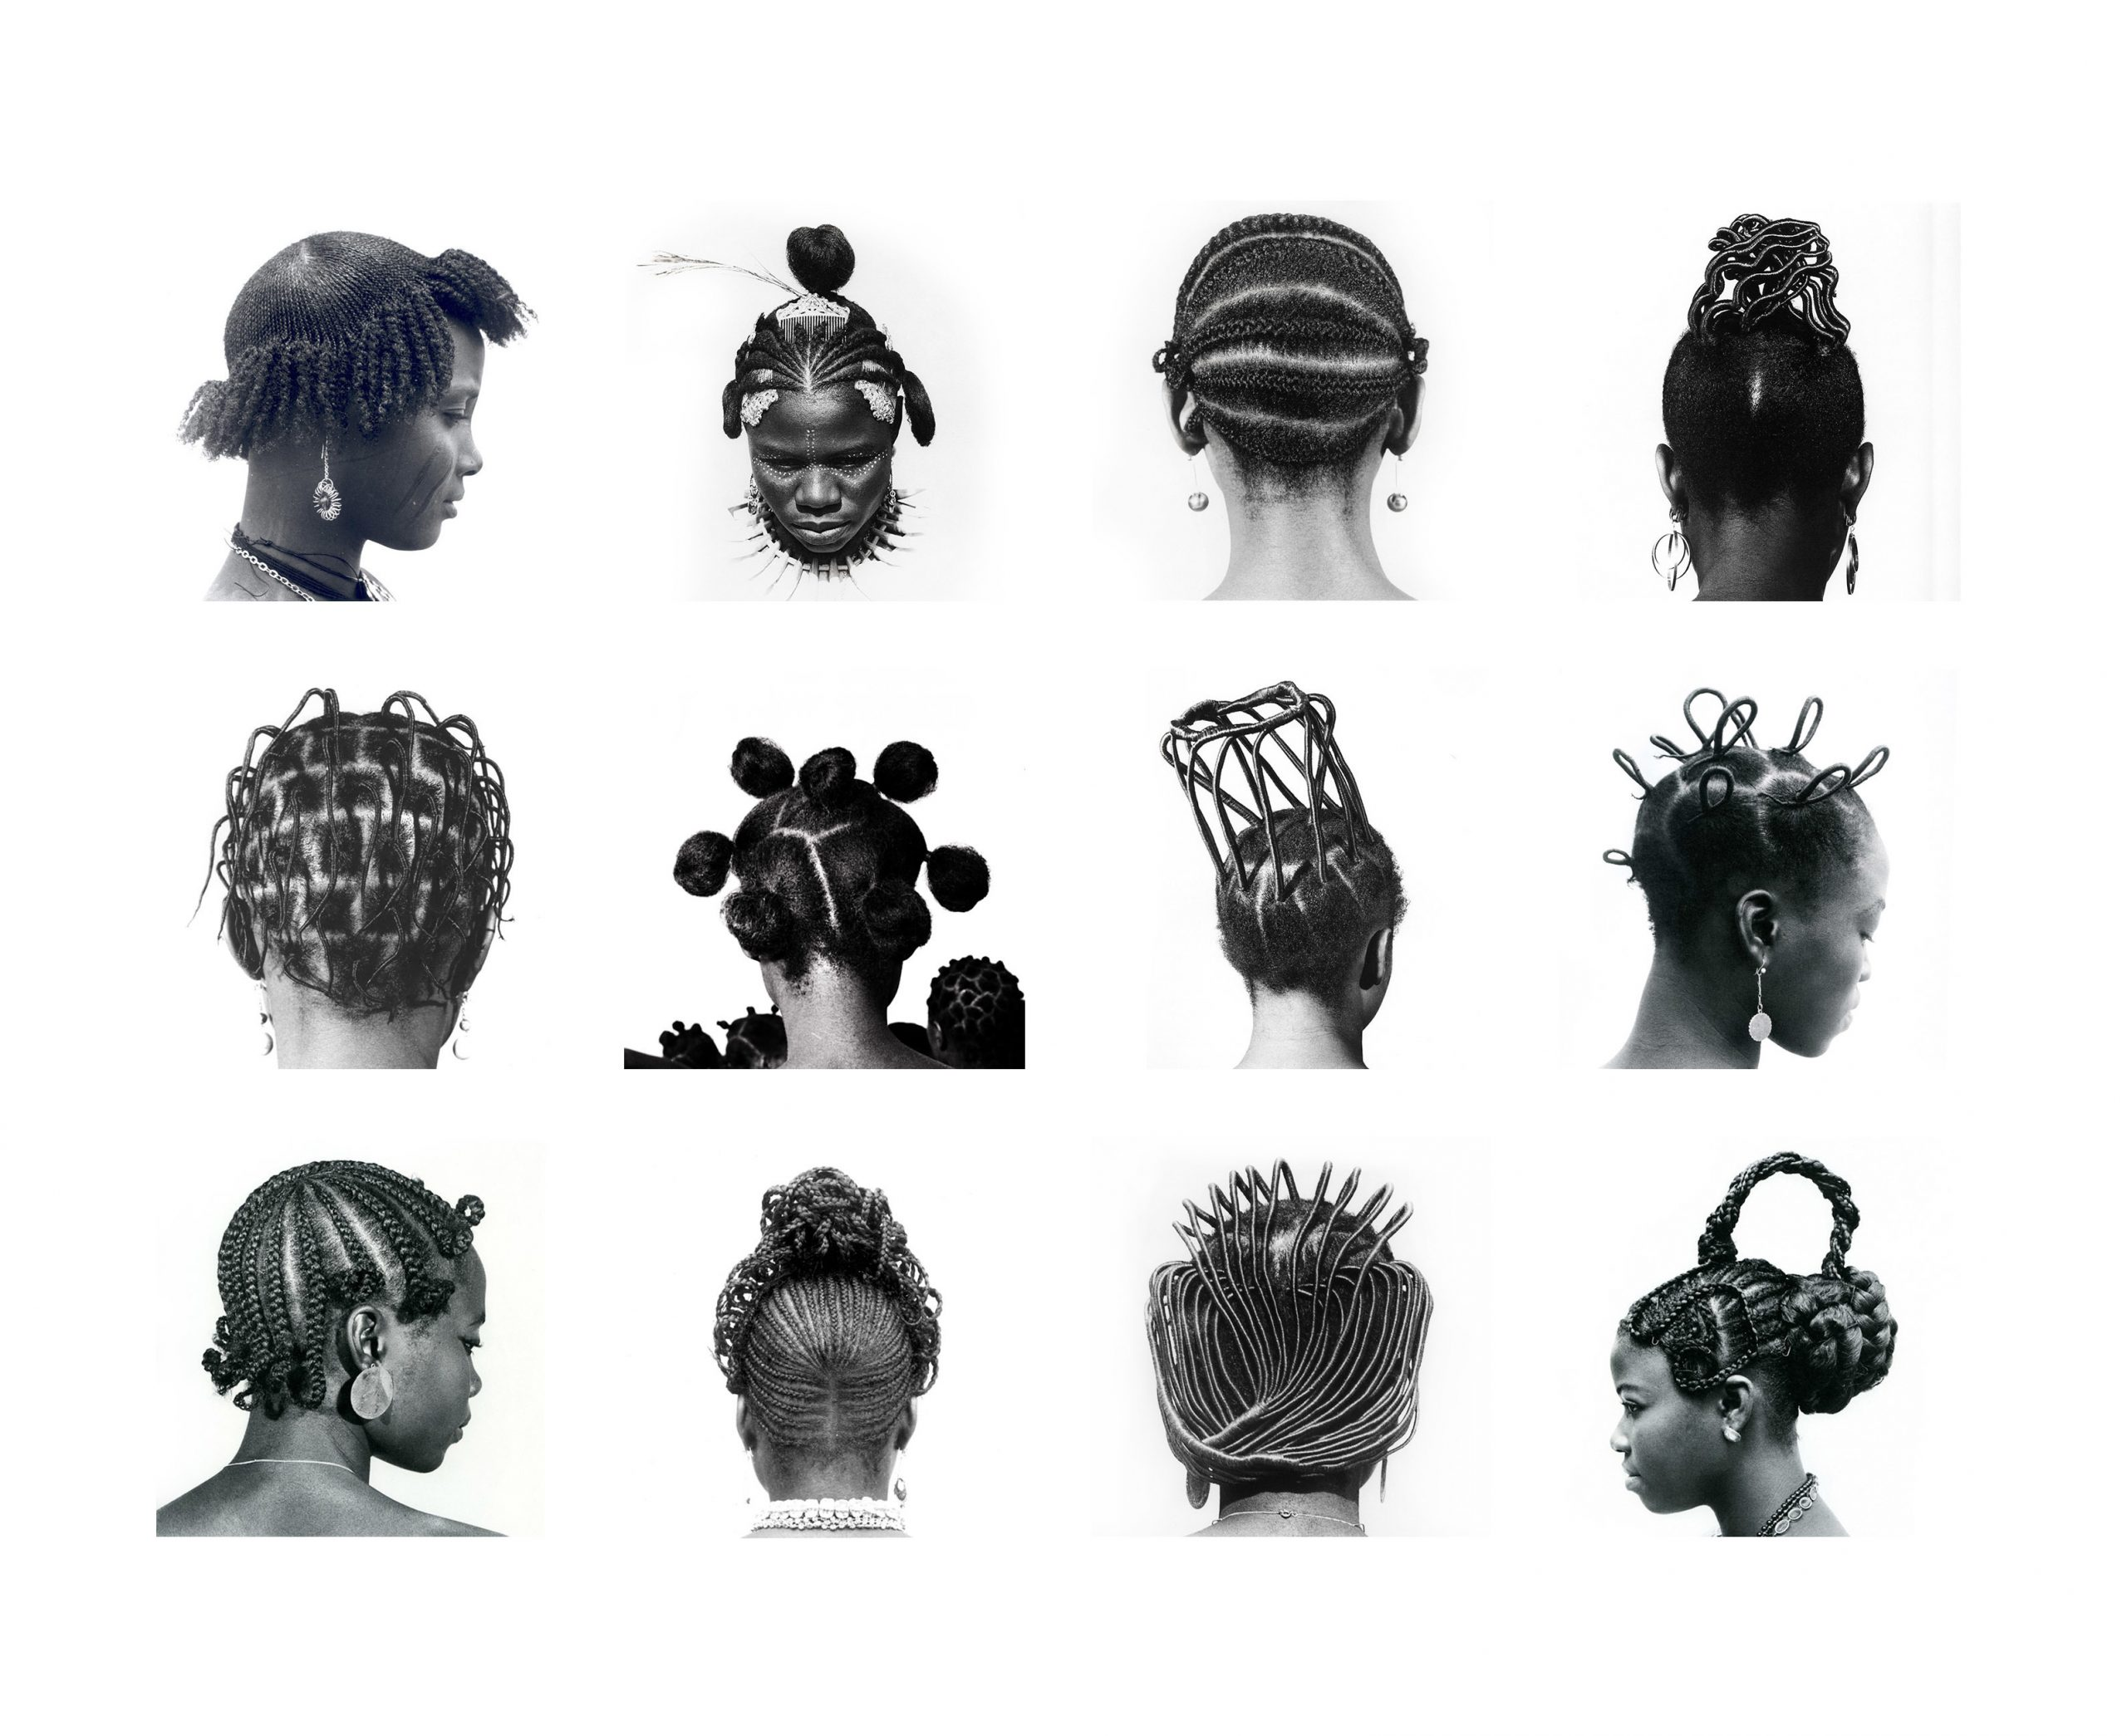 The 12 prints from the series Hairstyles by Nigerian photographer J.D. 'Okhai Ojeikere (1930-2014) show women coiffed in elaborate styles both traditional and of the moment, their similarities and differences seeming to blend together.